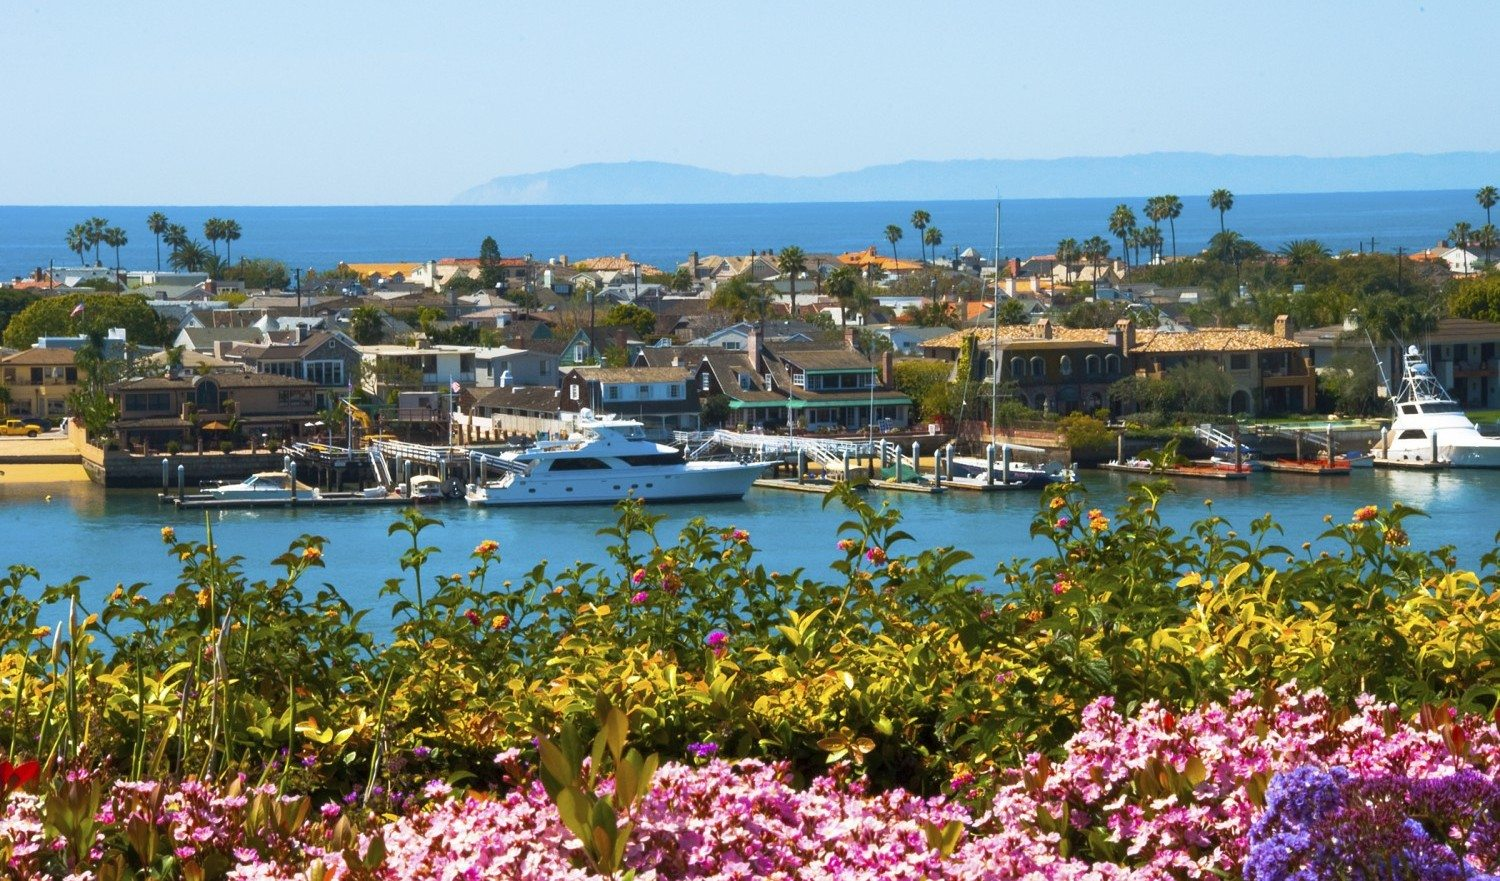 """""""A scene in Newport Beach in Orange County with houses and yachts in Lido Isle, Newport Bay,  Santa Monica Mountains (and the city of Malibu) in the background and plants and flowers in the foreground."""""""